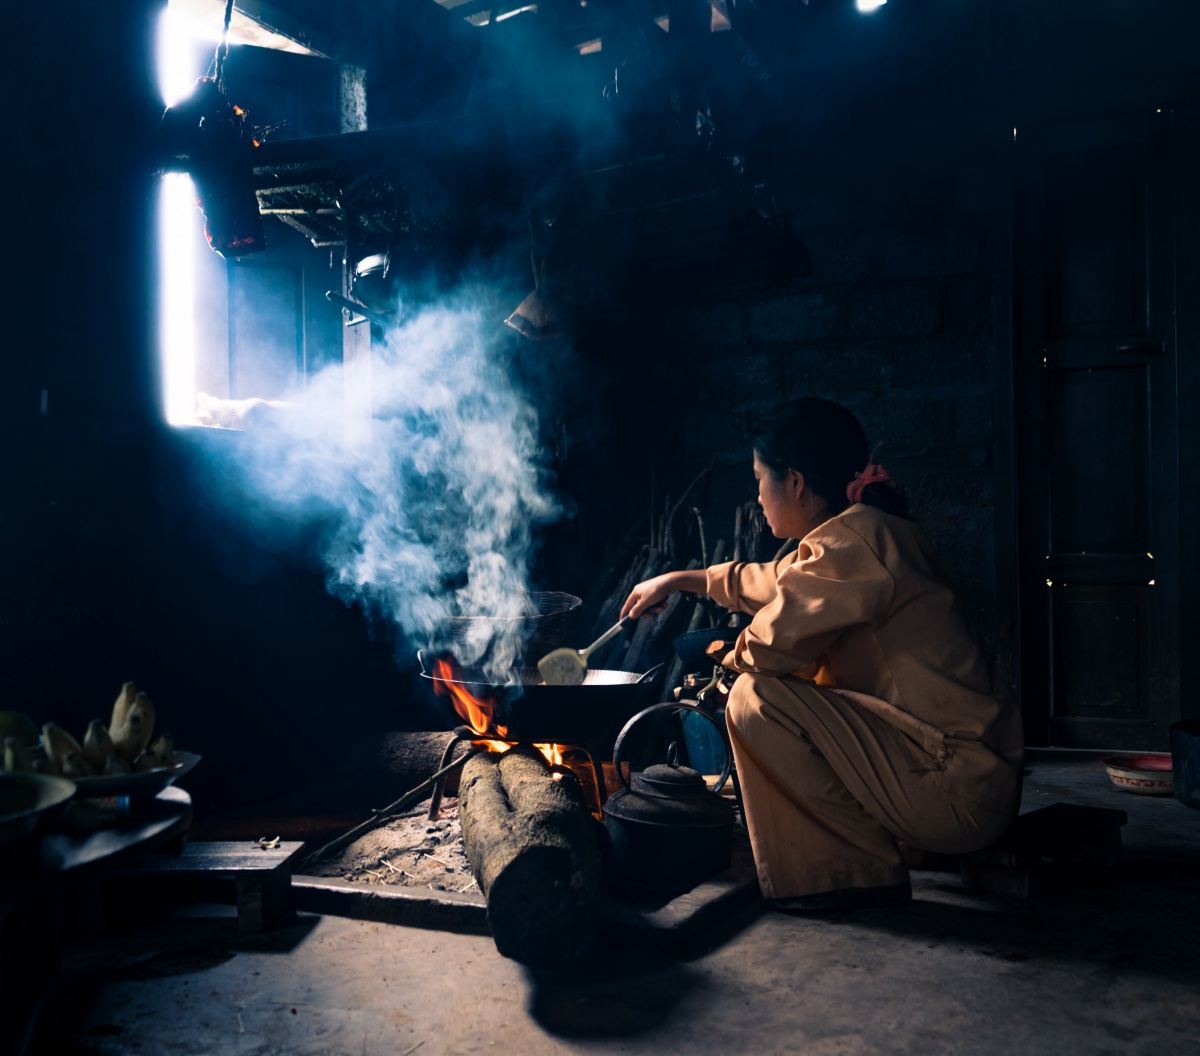 Photo of Traditional Palaung Kitchen in Kalaw, Myanmar. The kitchen is filled with smoke and a girl is cooking by open fire stove.